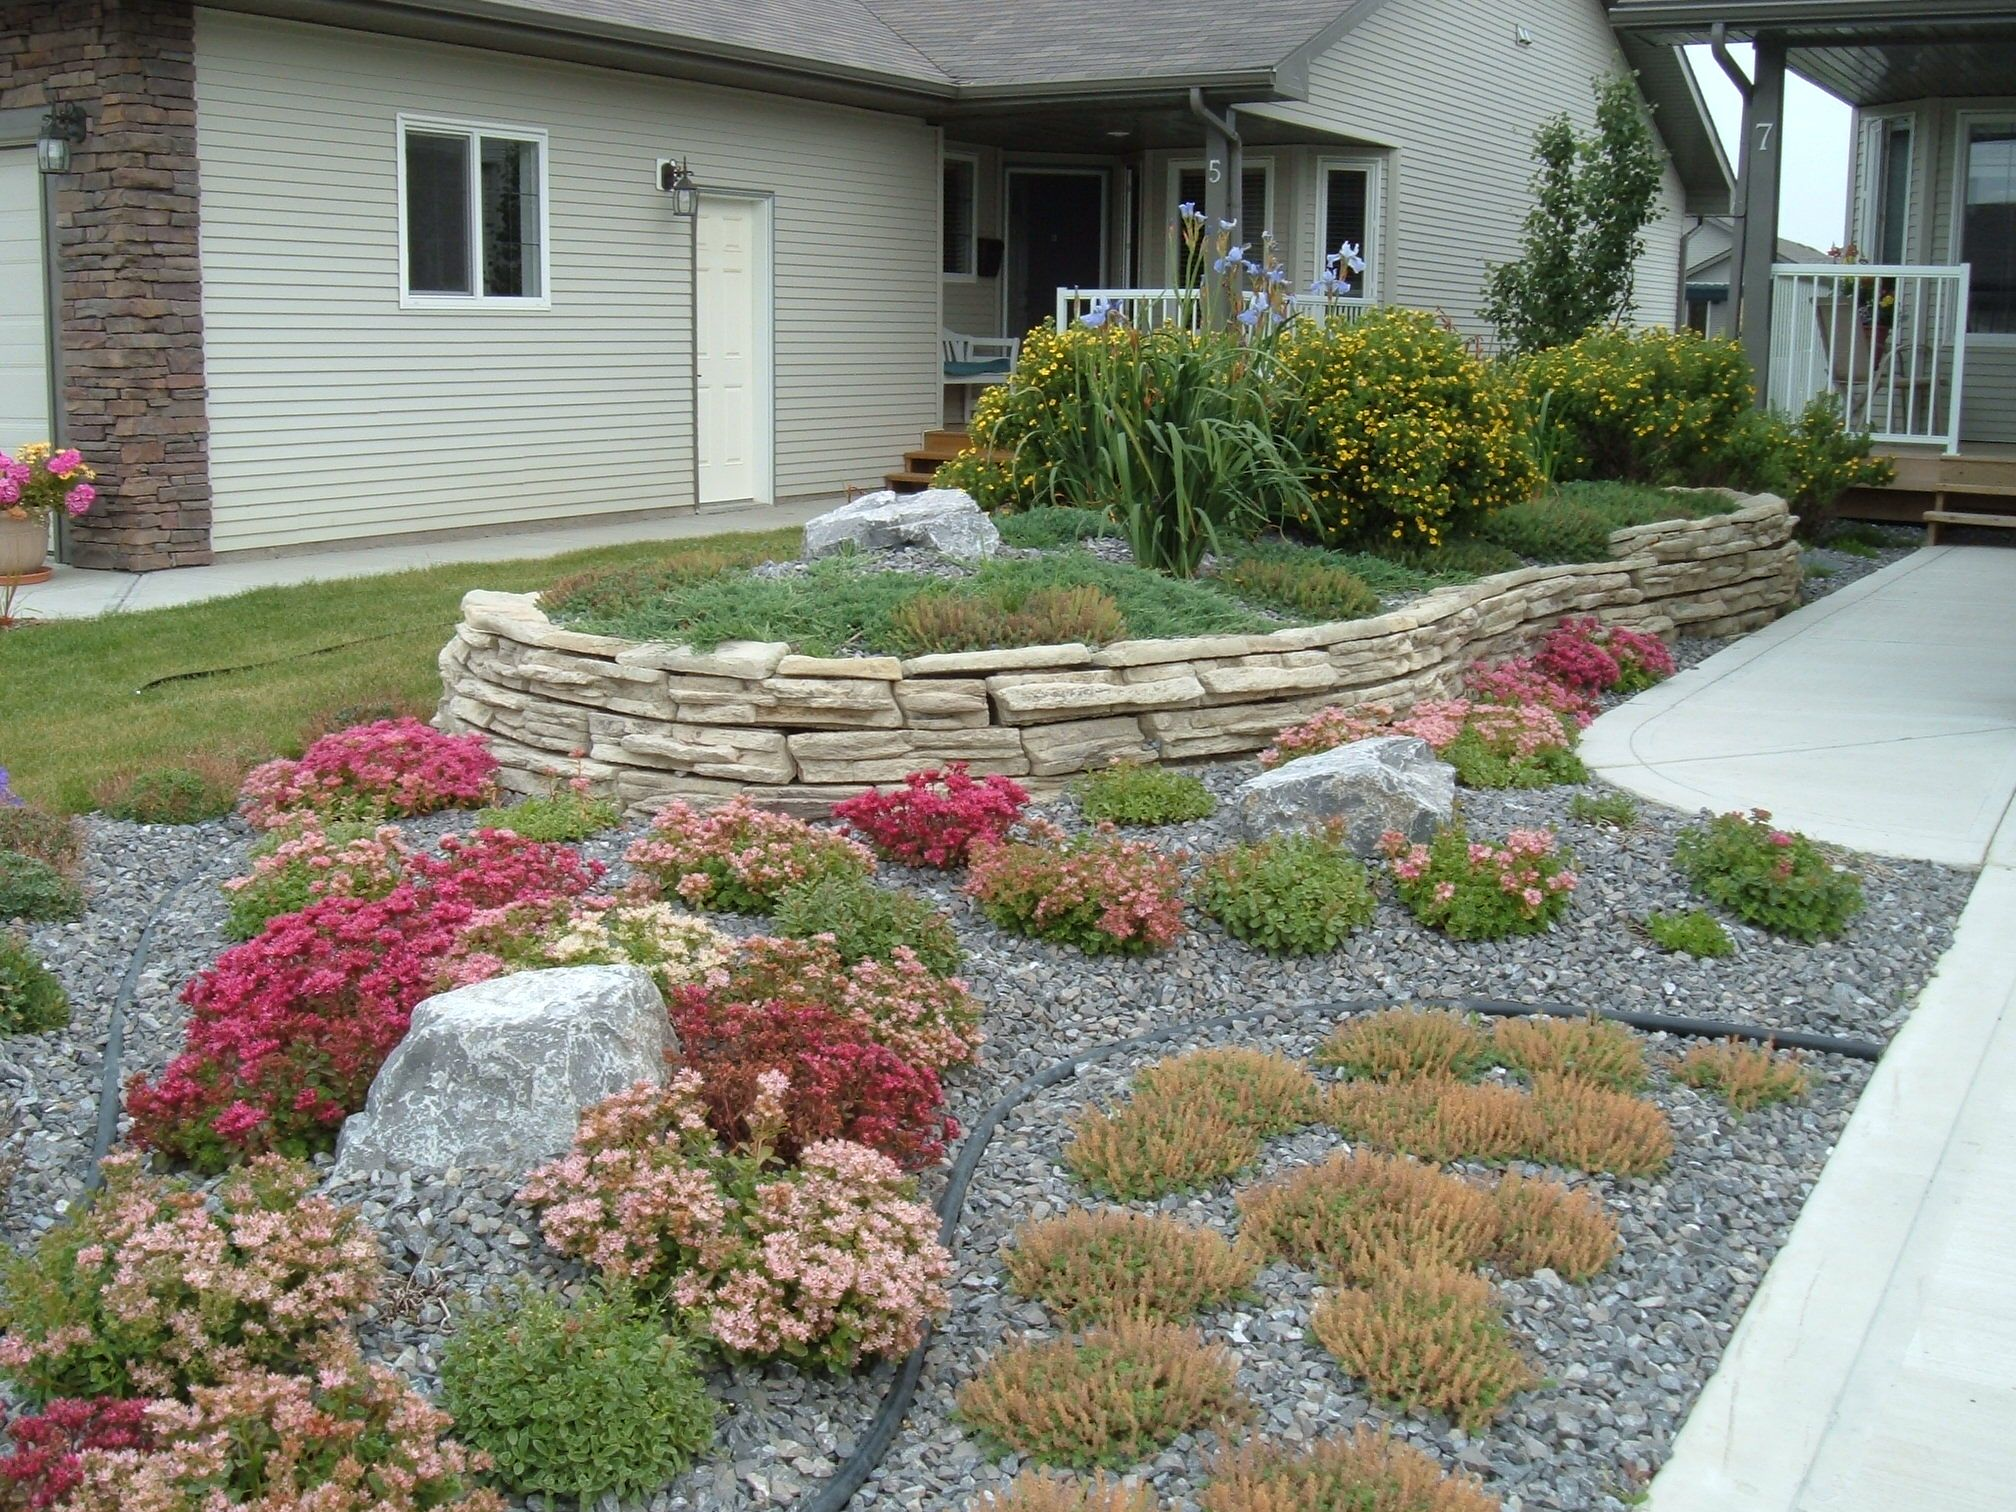 12 best images about Drought Resistant garden ideas on Pinterest ...